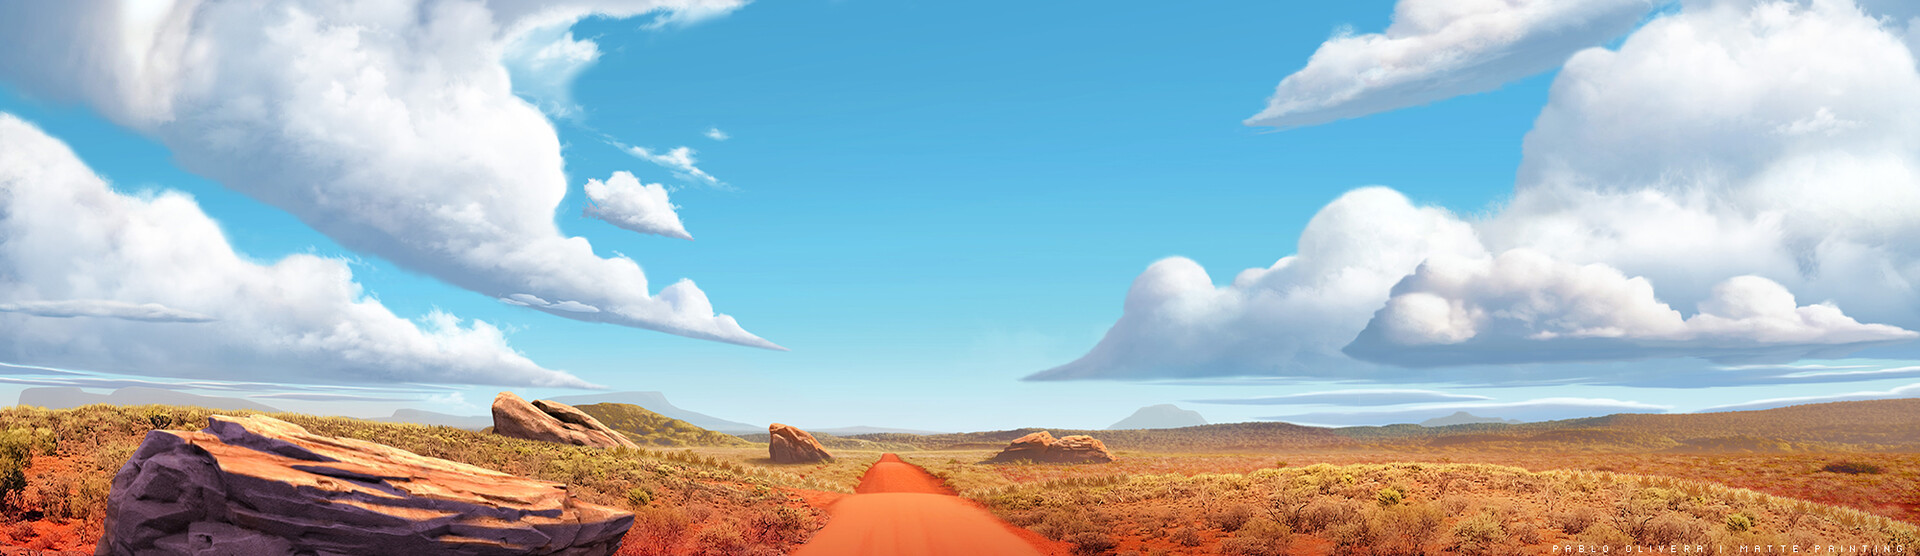 Pablo olivera lil dicky earth outback mattepainting